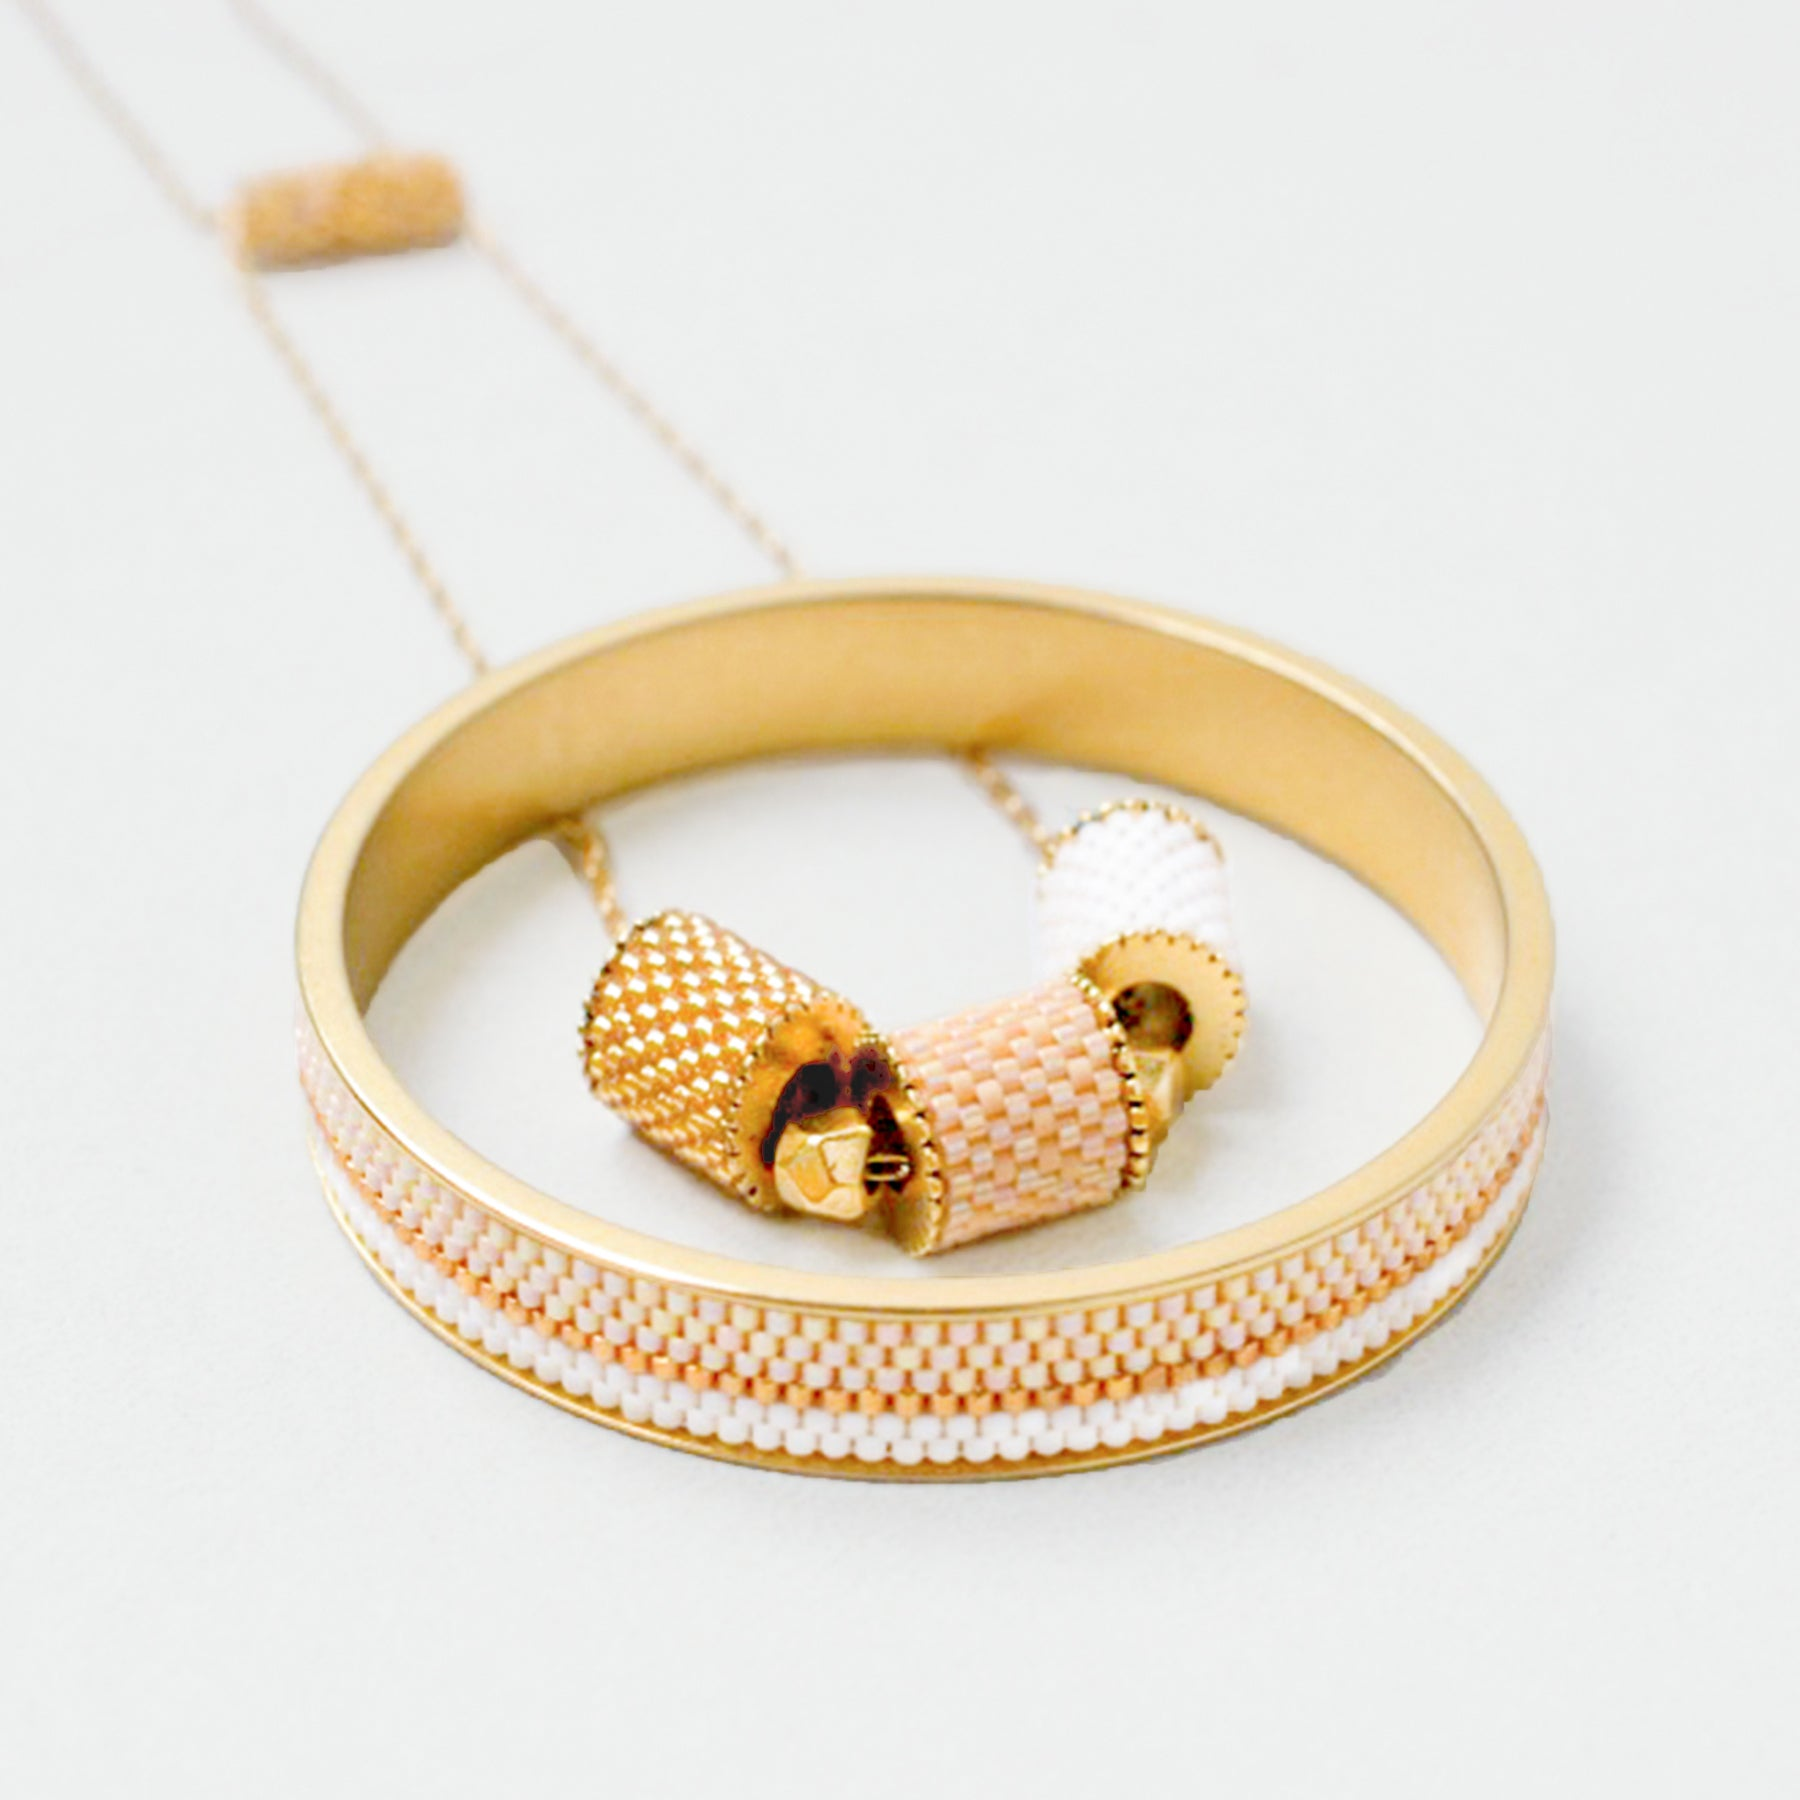 Artisanal jewelry gold plated necklace + bangle sets